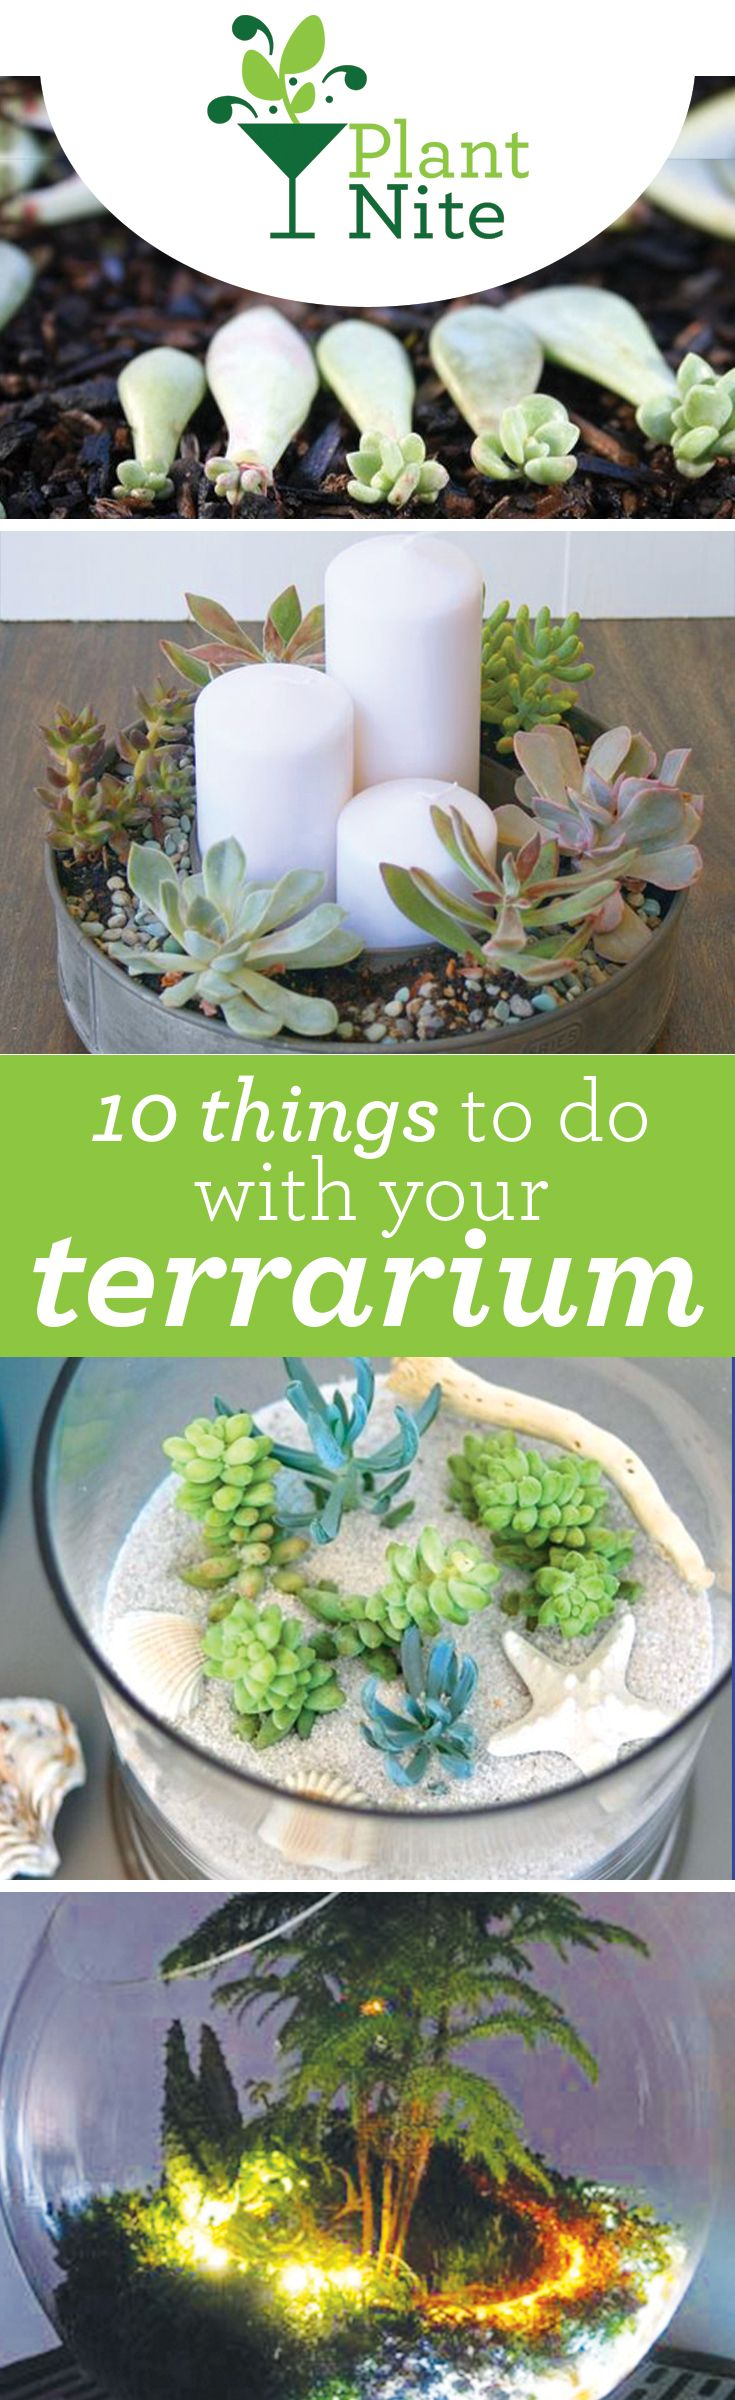 A lot of people aren't sure what to do with all the terrariums they bring home from Plant Nite. Here are 10 creative ideas for making your succulents stand out. Find a Plant Nite near you at PlantNite.com.